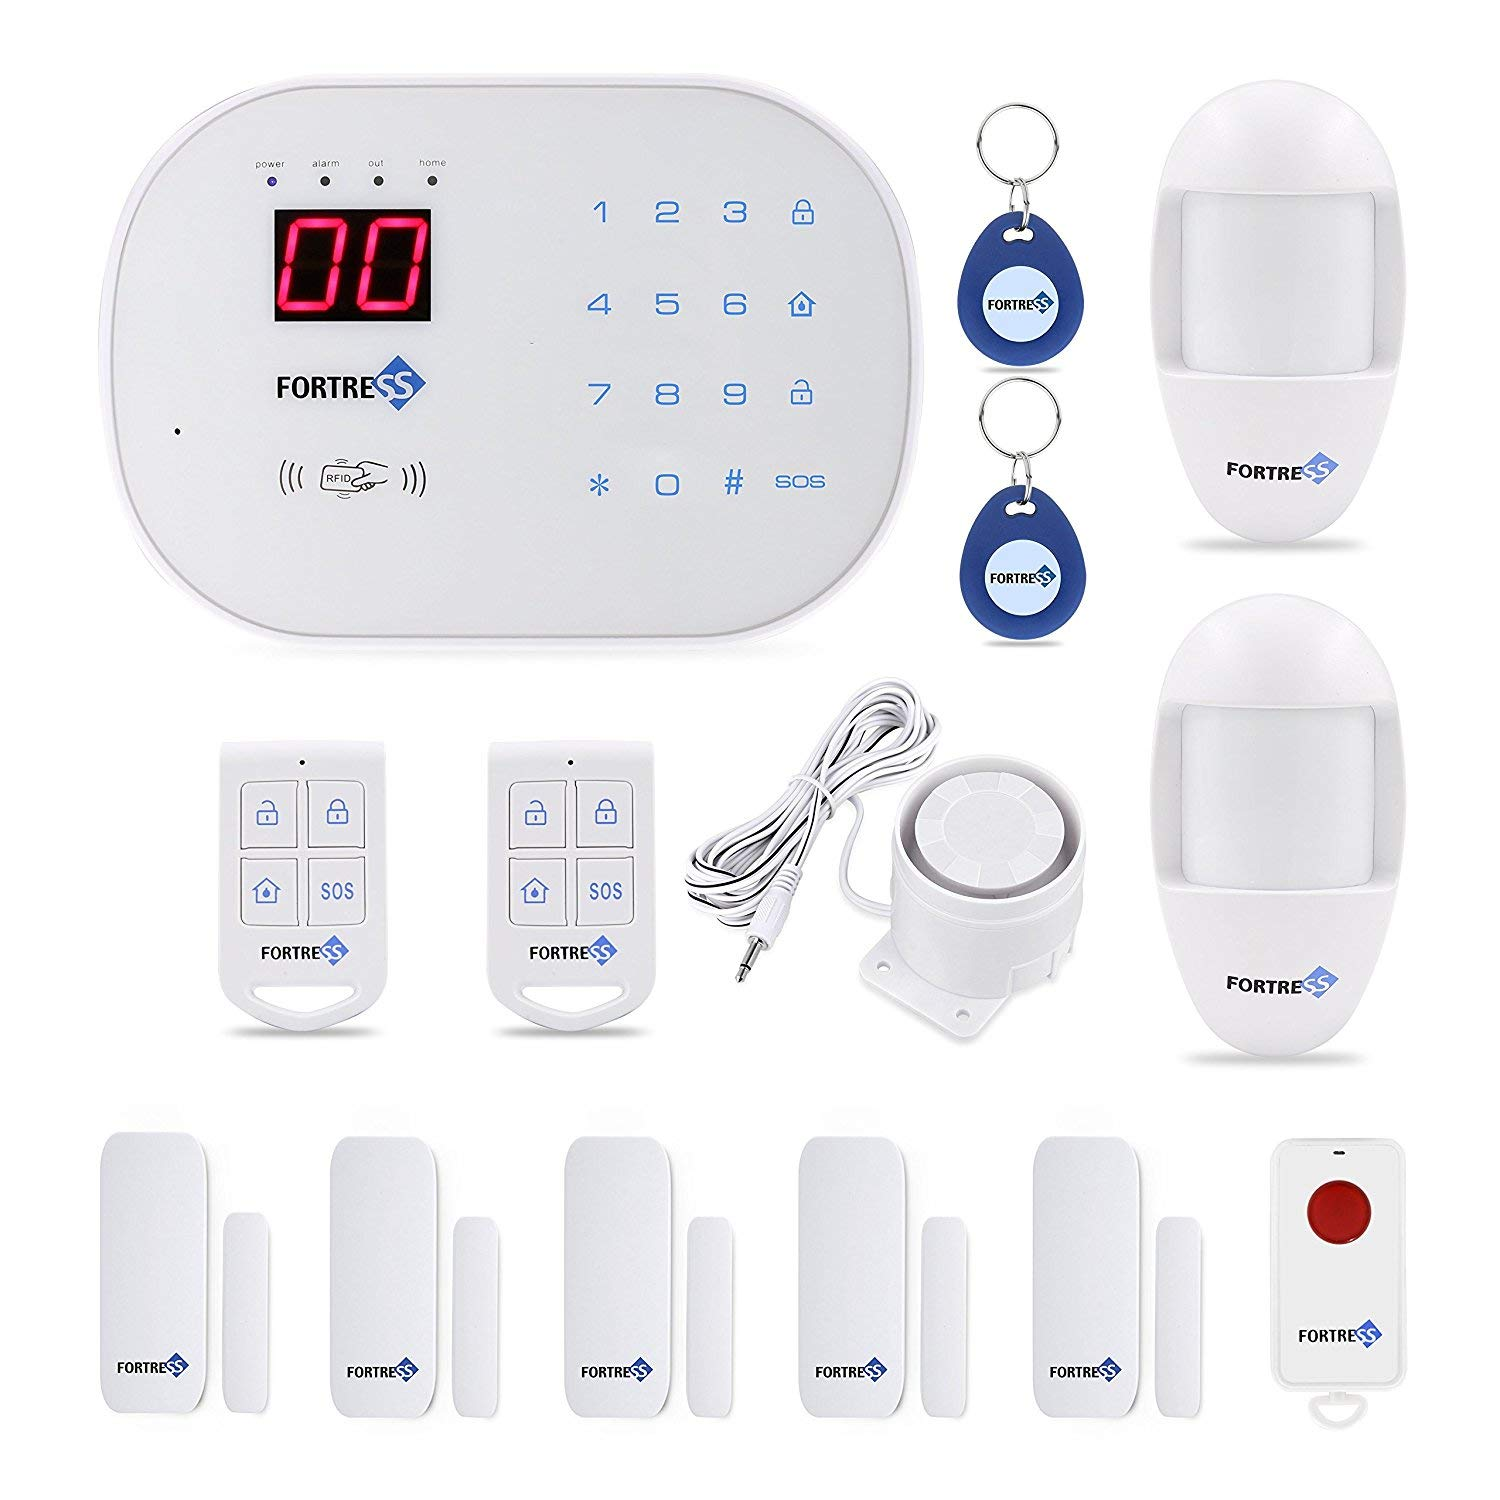 Fortress Security- Classic home security system with optional 24/7 professional monitoring - No contracts - Wireless 14 piece security kit - Compatible with Alexa - DIY home security by Fortress Security Store